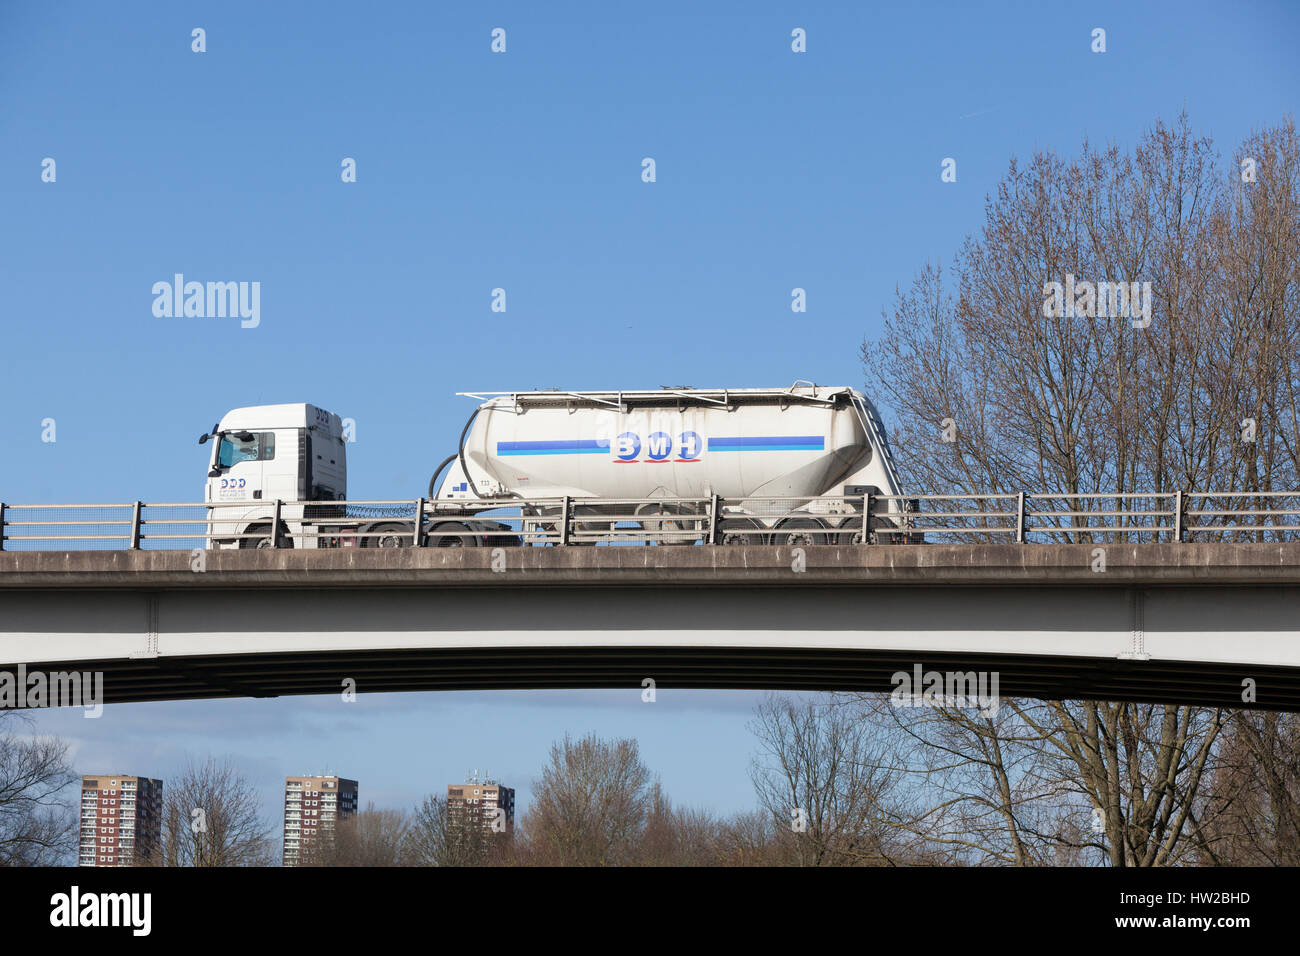 B McFarlane Haulage tanker on the road in the Midlands - Stock Image